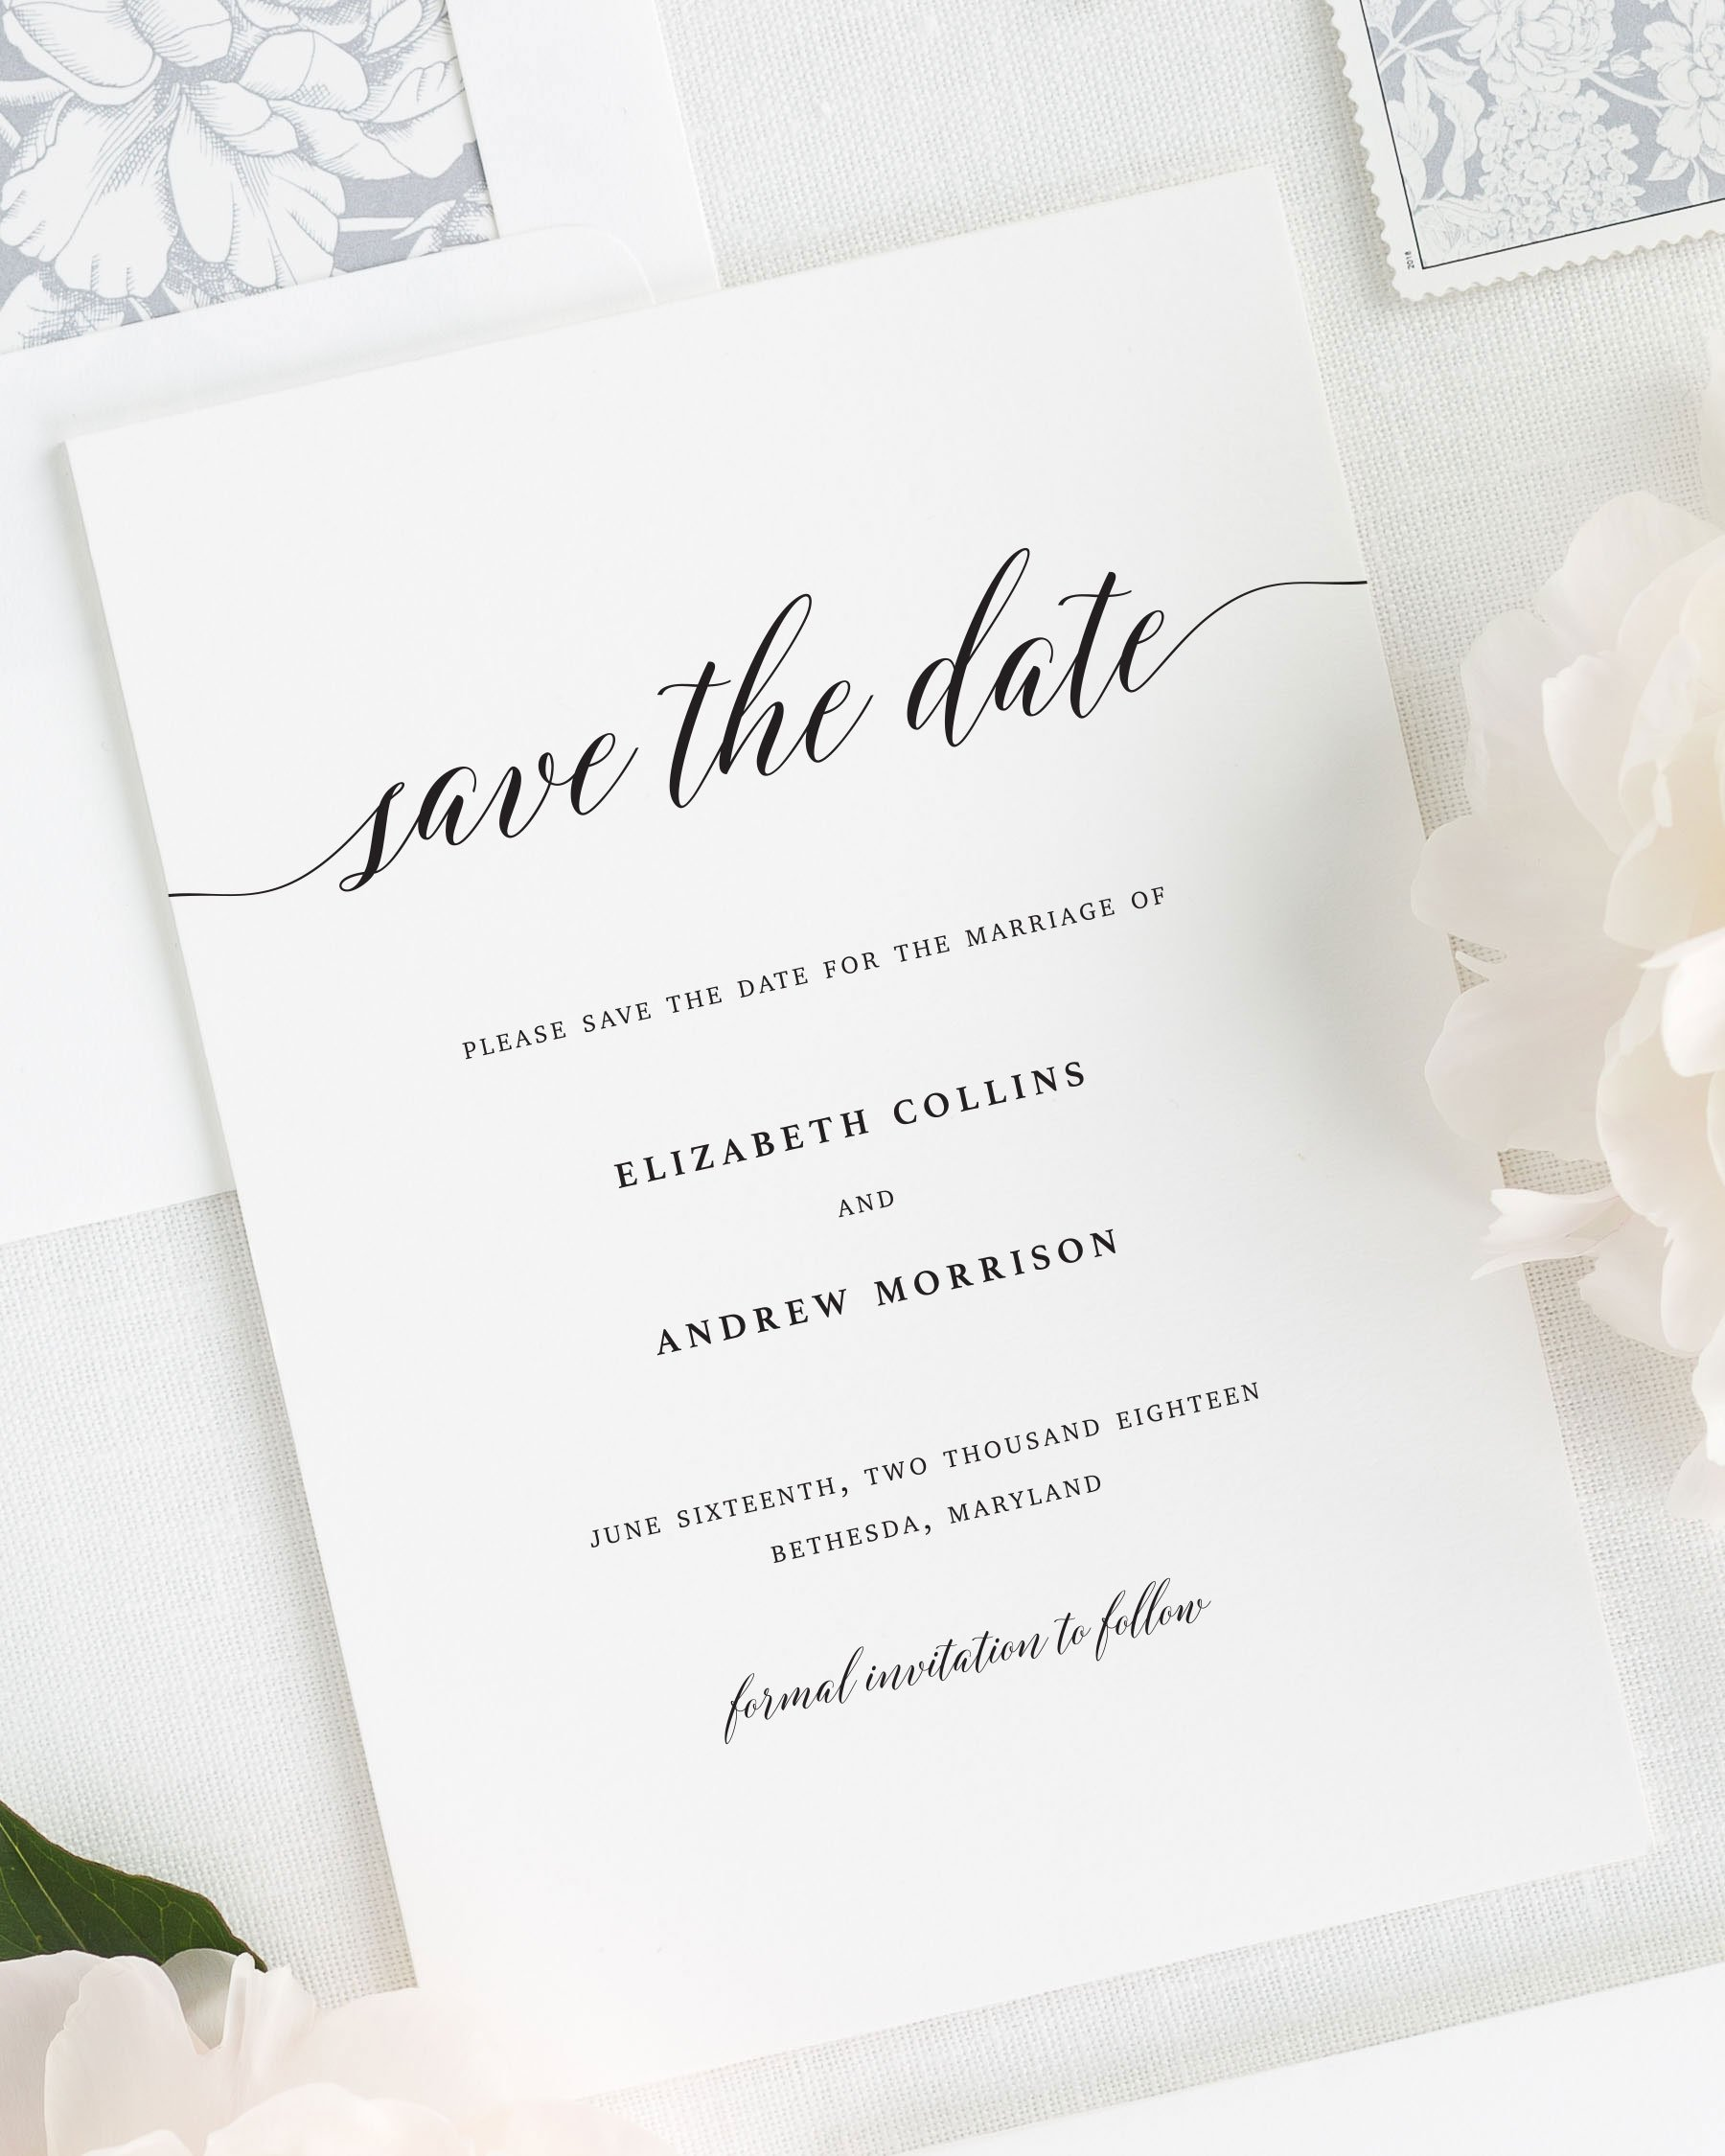 Matching Save The Date And Wedding Invitations: Elegant Romance Save The Date Cards